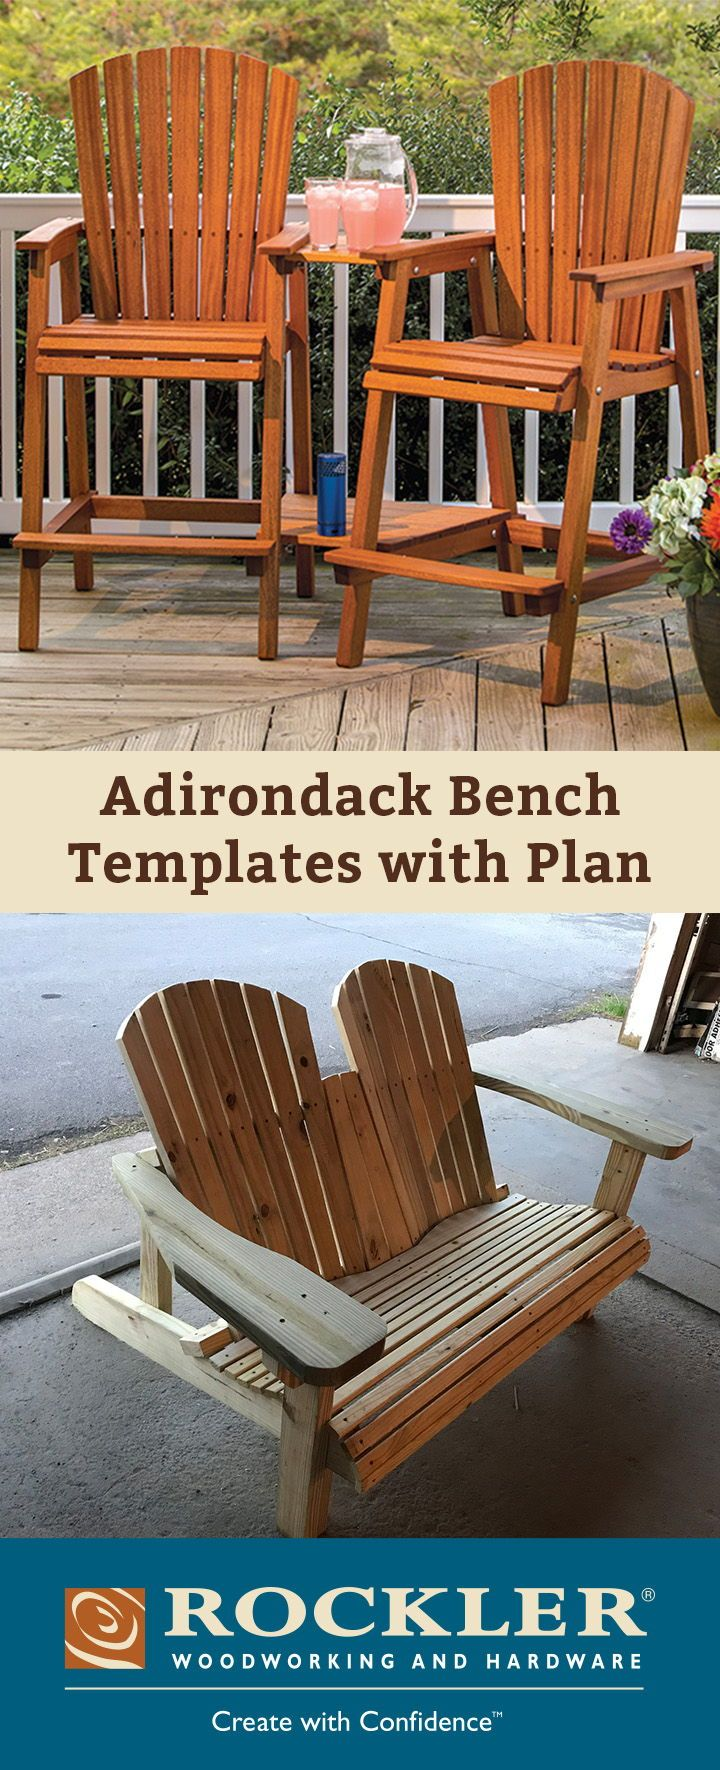 adirondack bench templates with plan and stainless steel hardware rh pinterest com